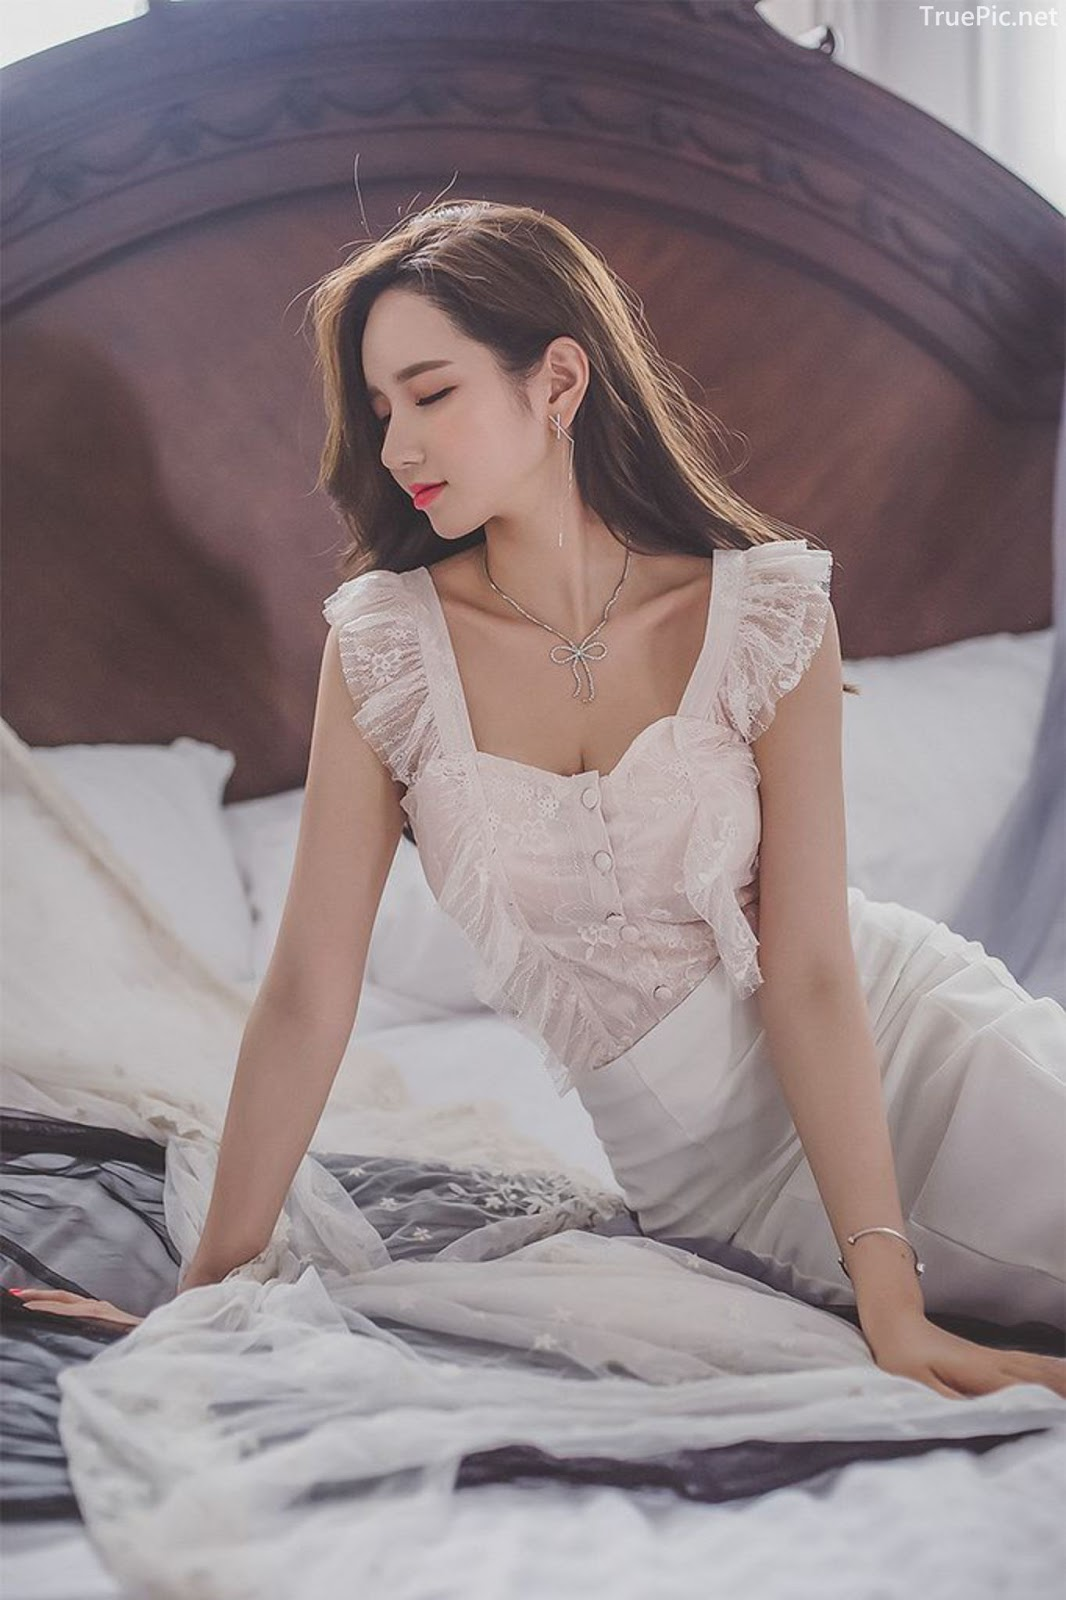 Lee Yeon Jeong - Indoor Photoshoot Collection - Korean fashion model - Part 2 - Picture 3